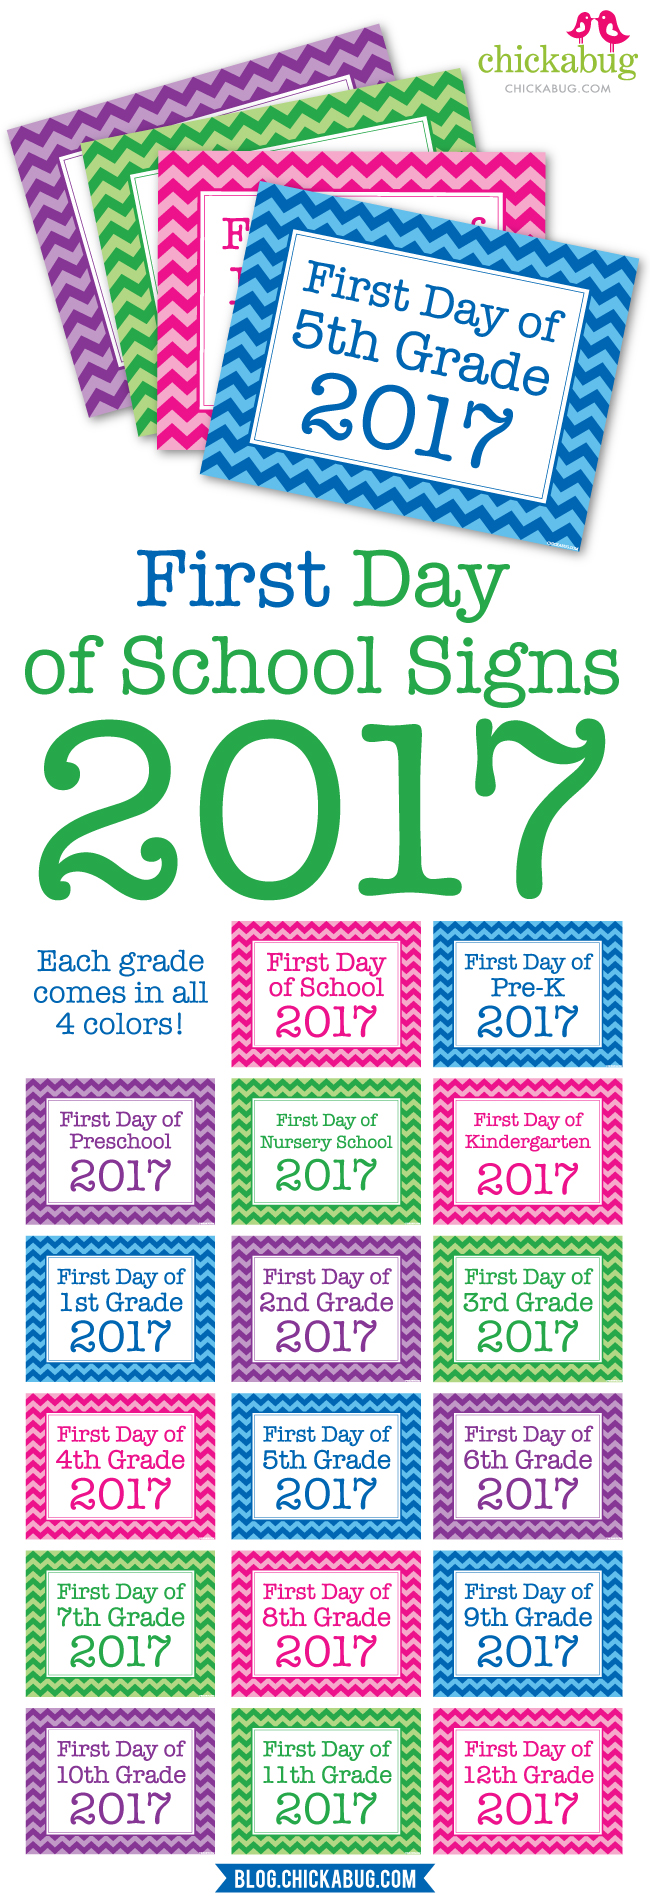 First day of school signs 2017